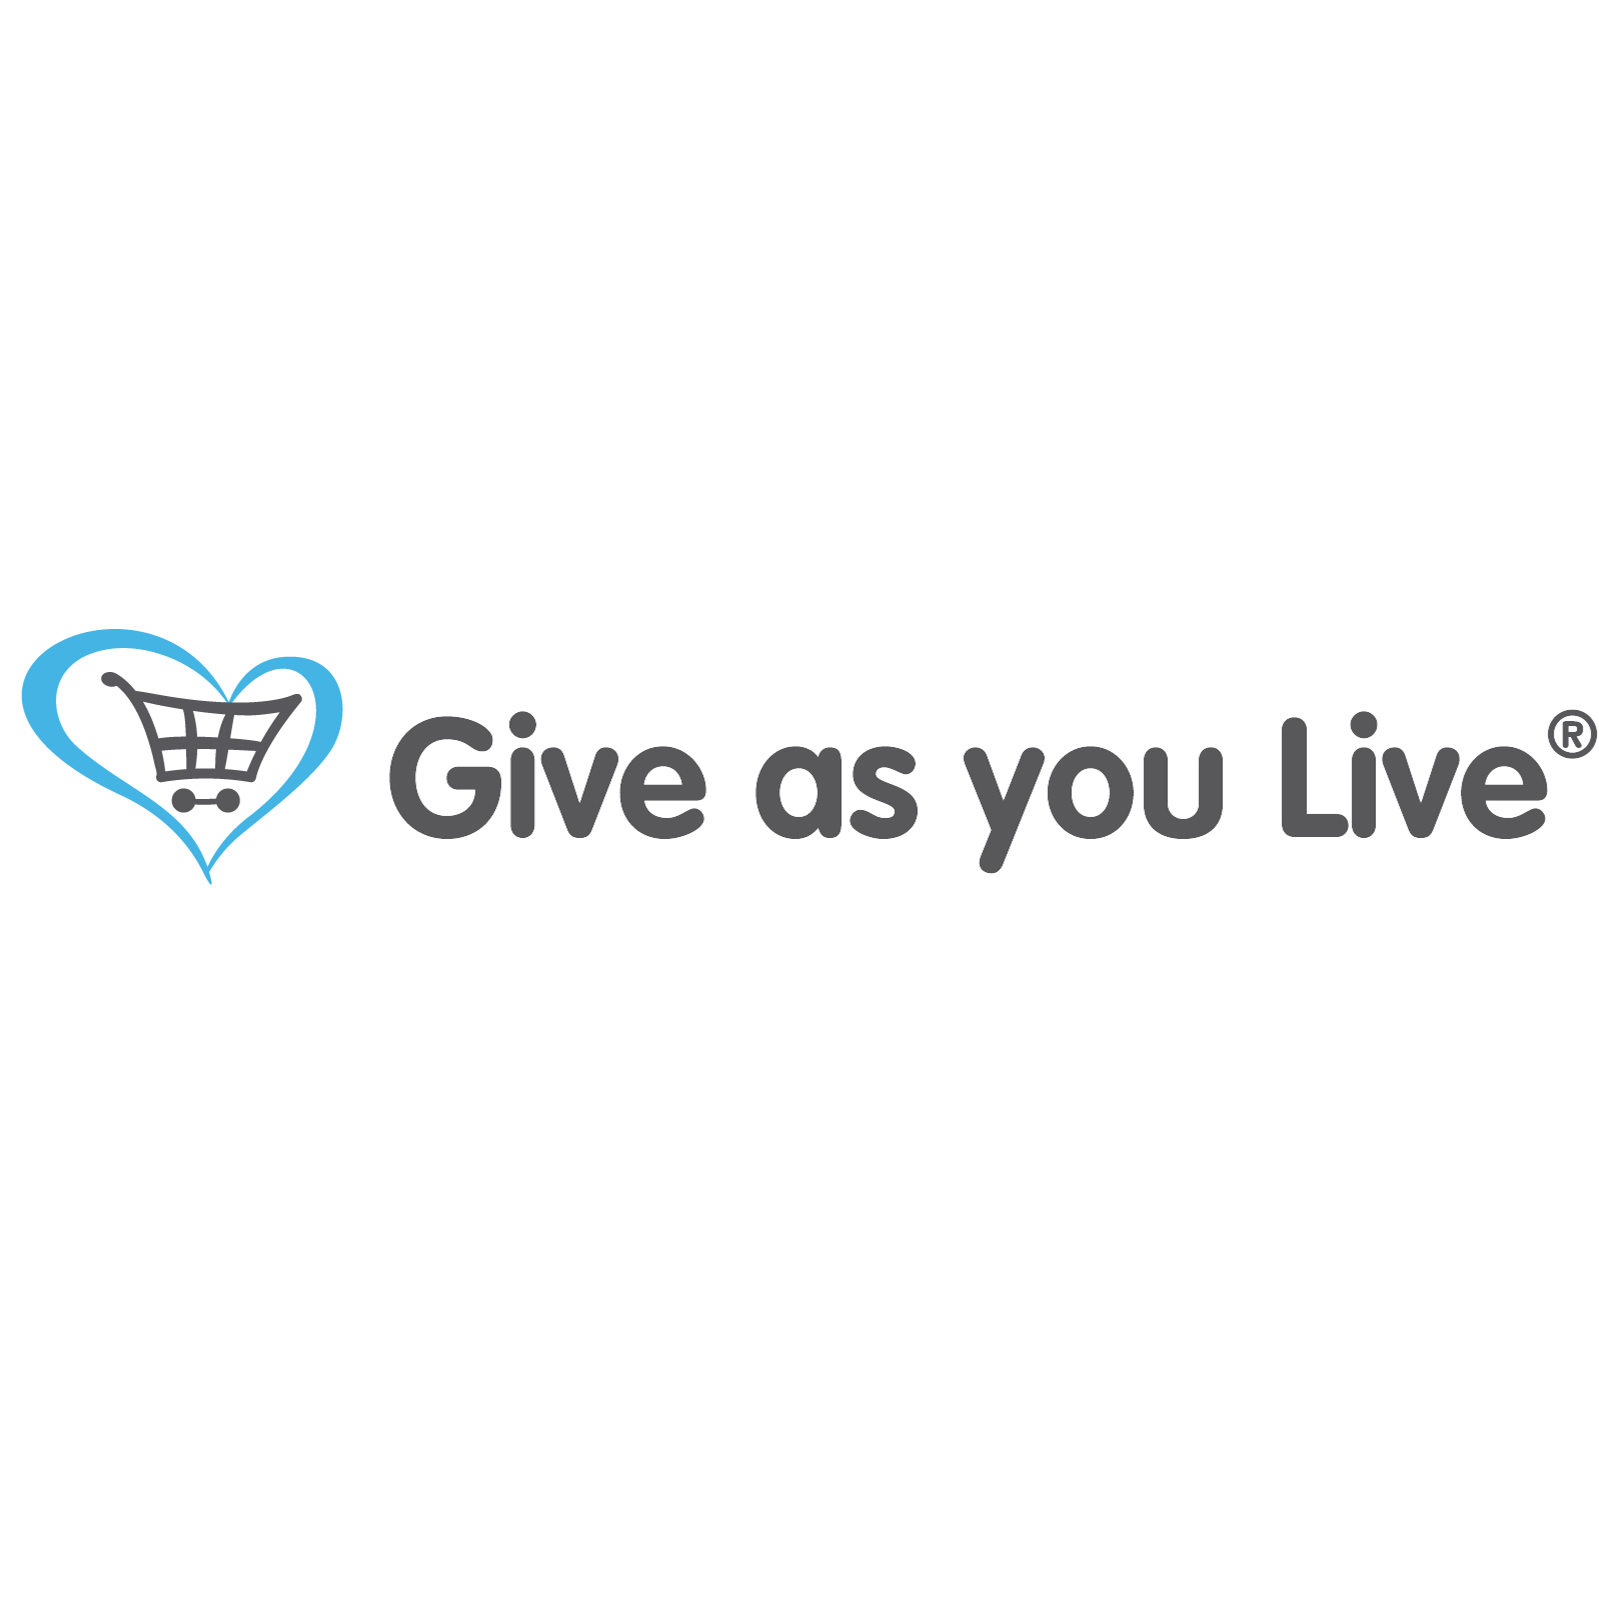 Give as you live logo (charity)